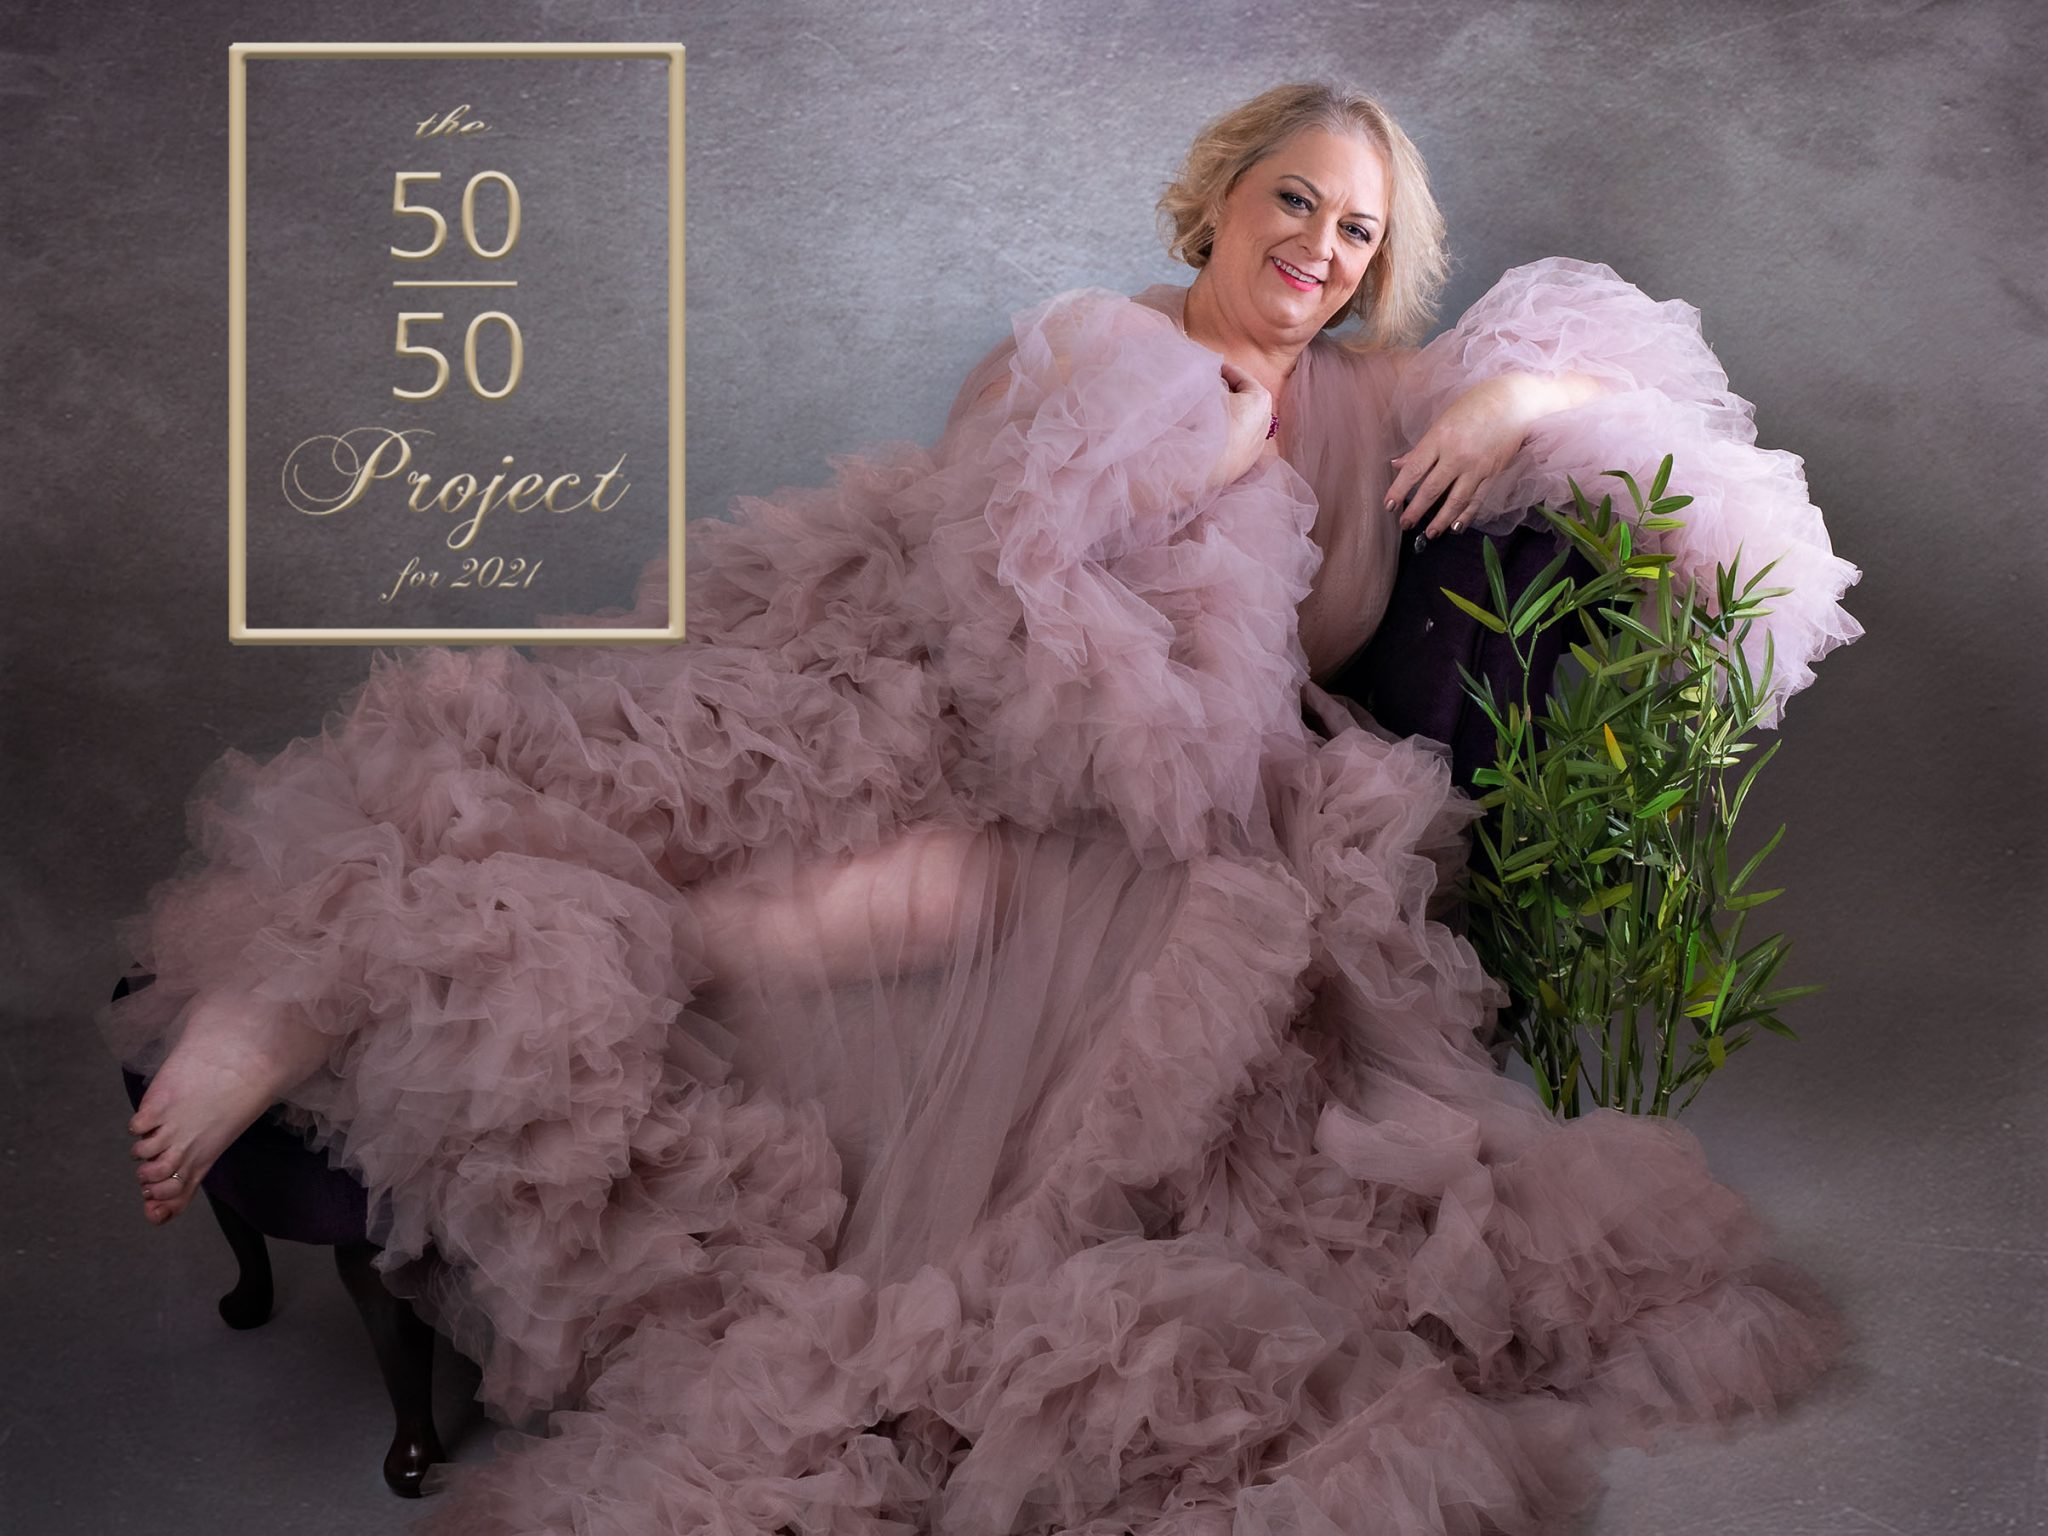 50 over 50